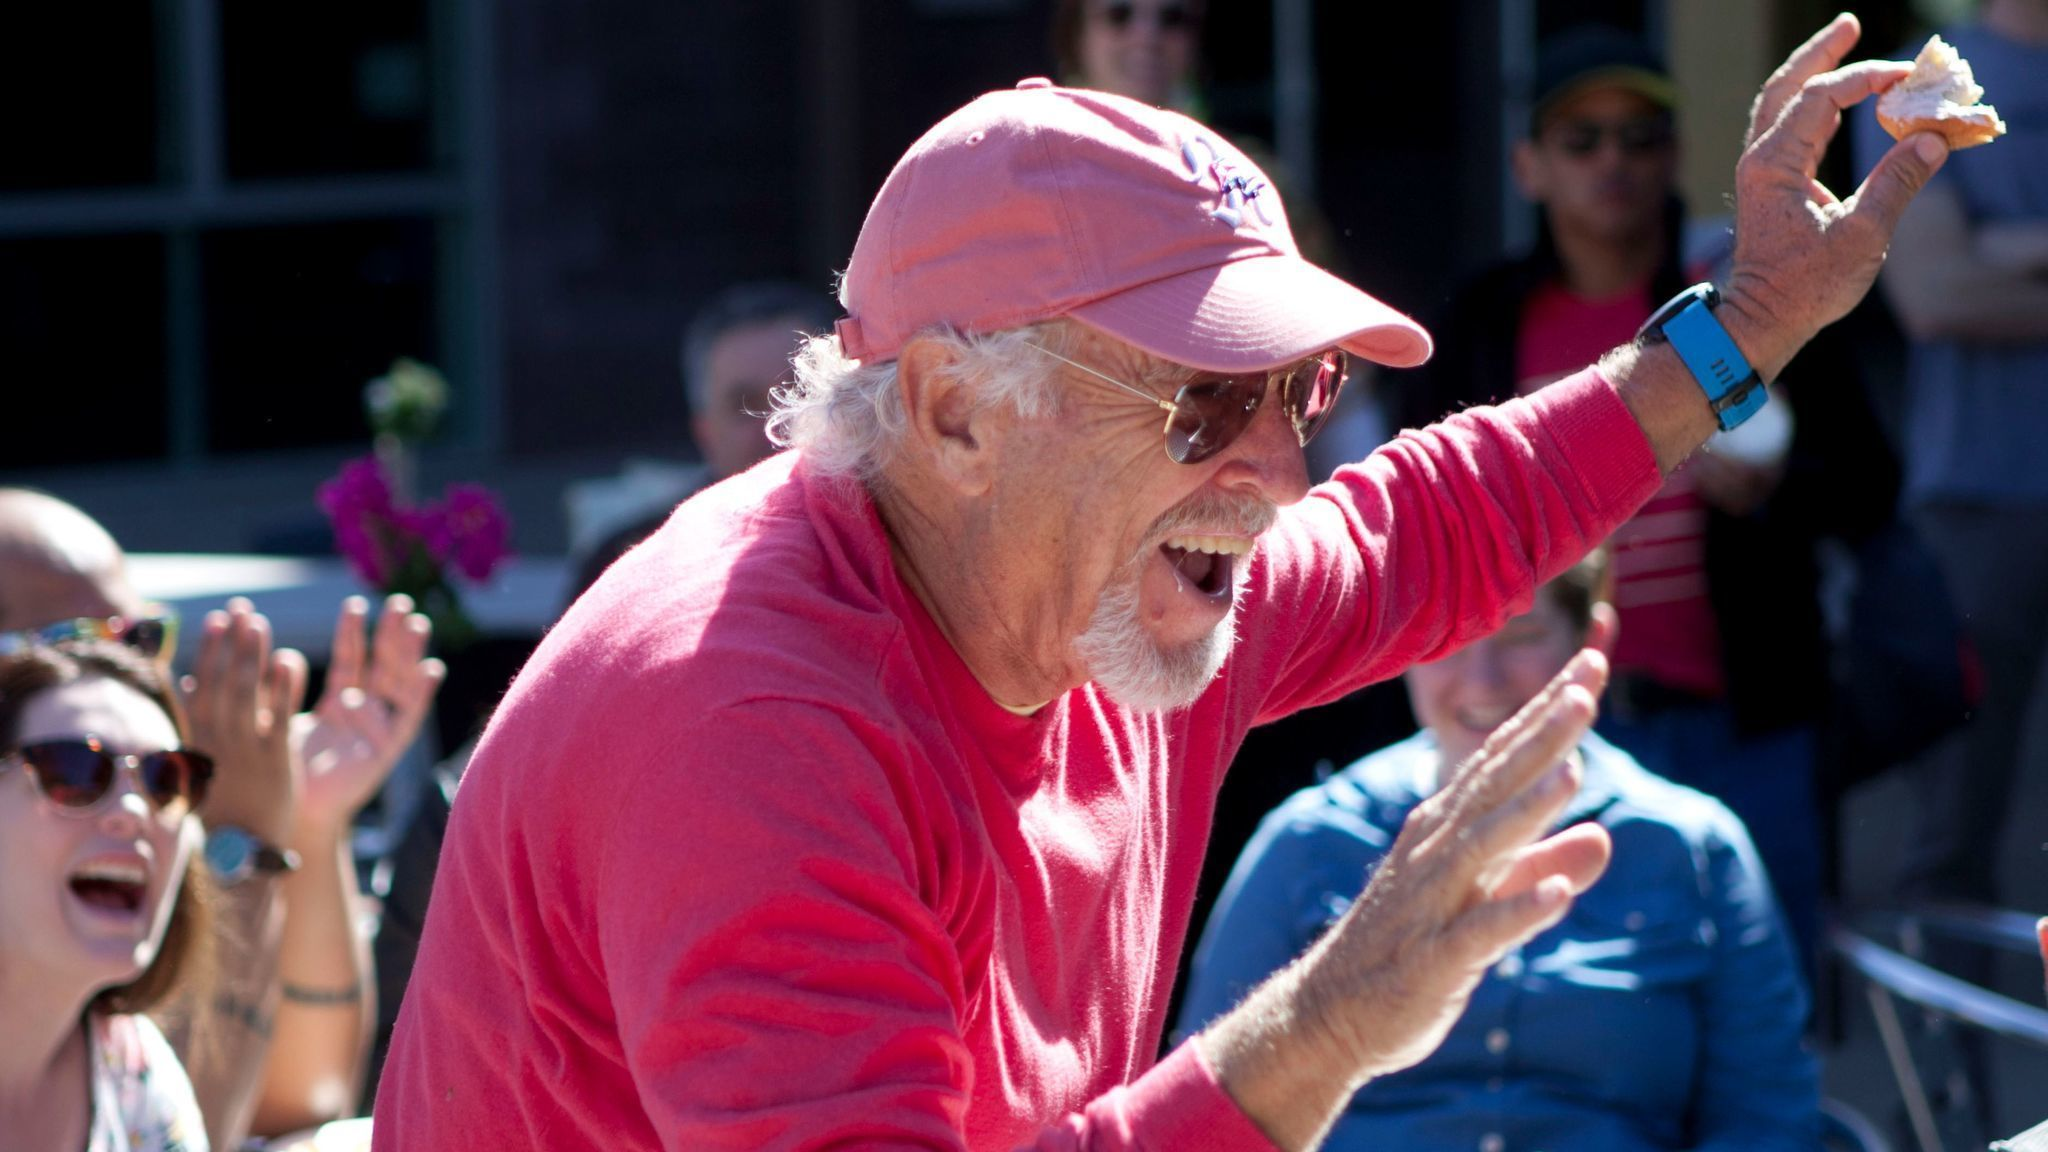 Changes in latitudes: Tracking the elusive Jimmy Buffett (and ...